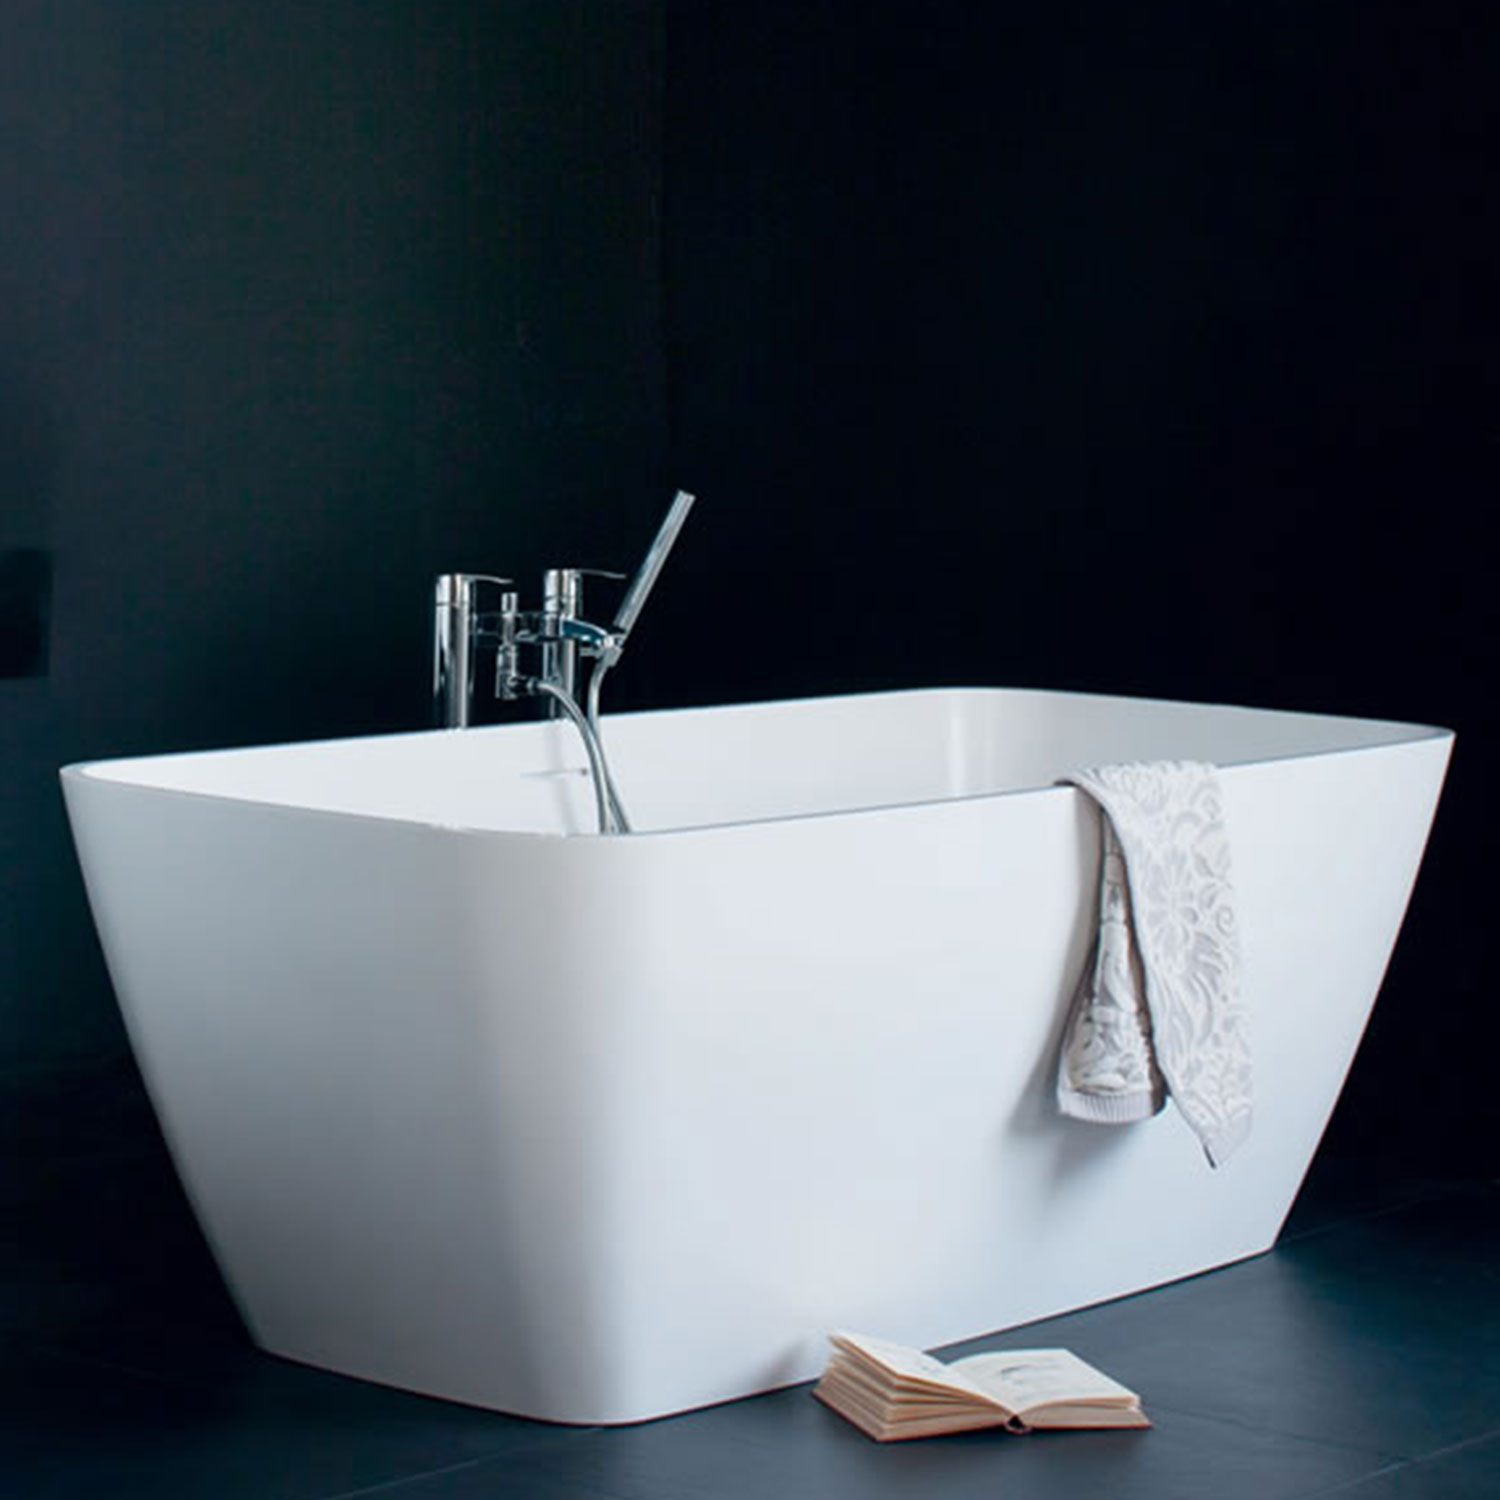 Clearwater Vicenza Piccolo Freestanding Bath 1600mm x 750mm - Natural Stone-0